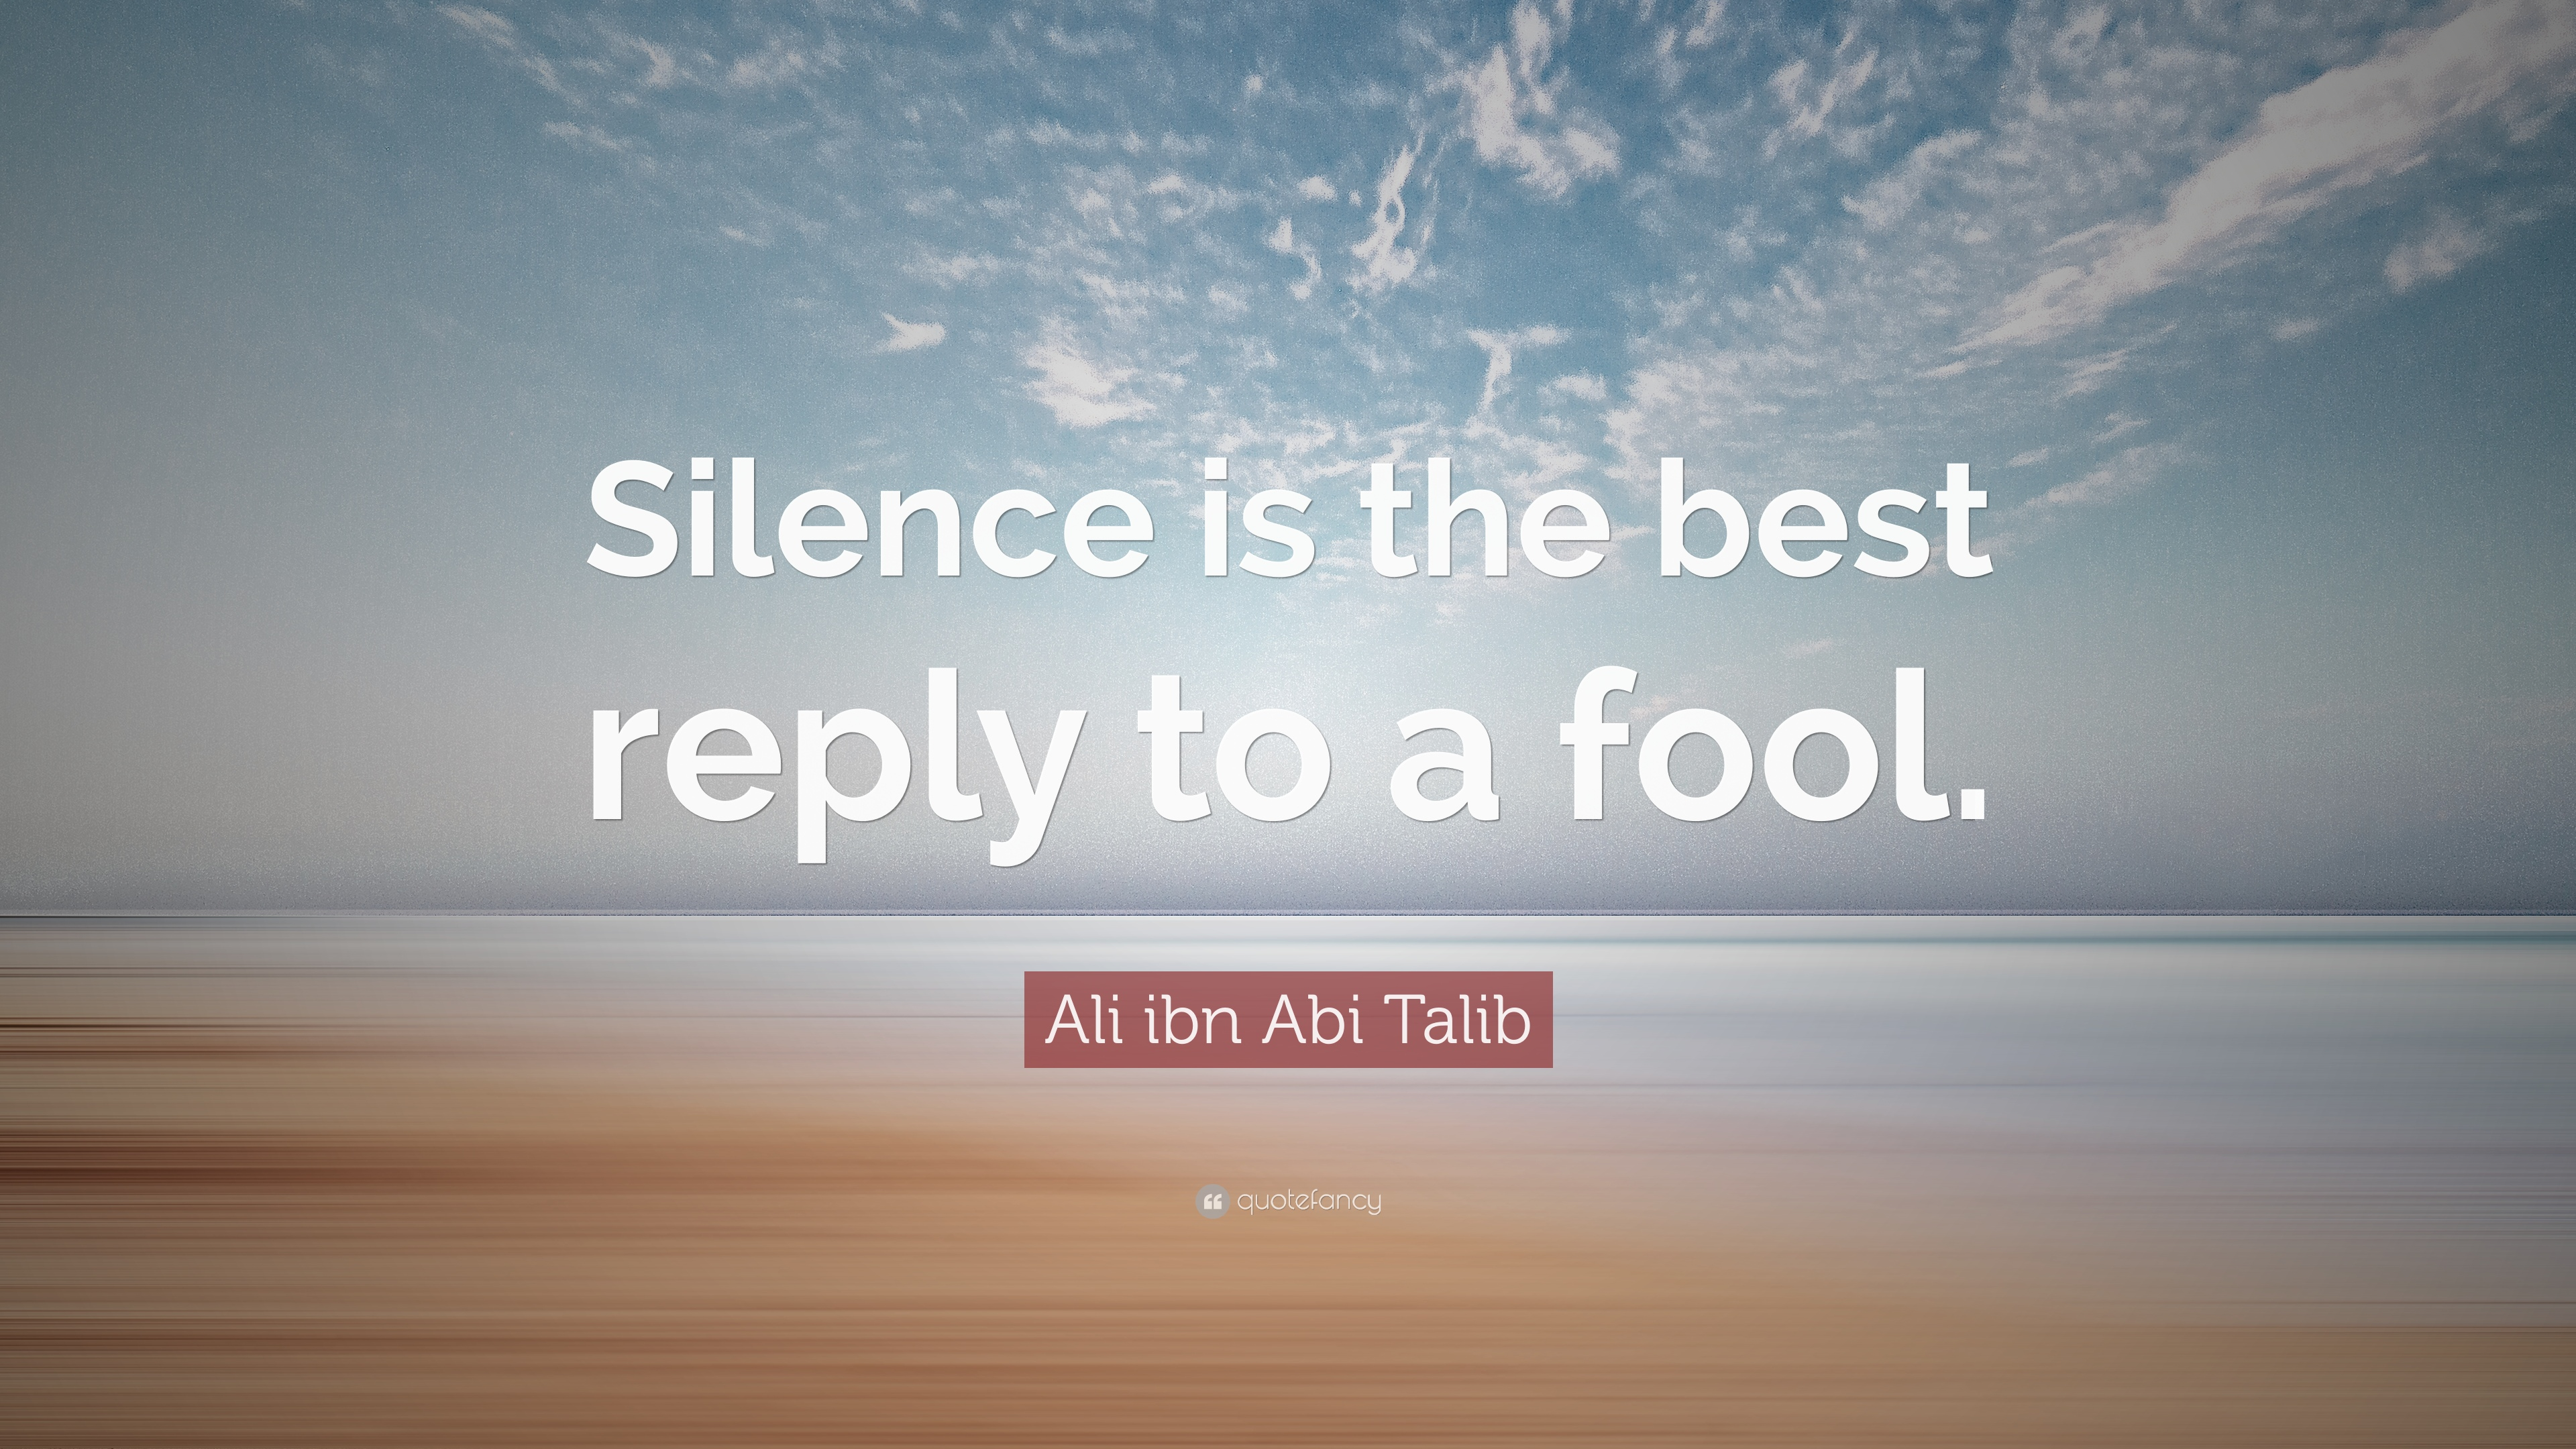 Ali ibn Abi Talib Quote: Silence is the best reply to a